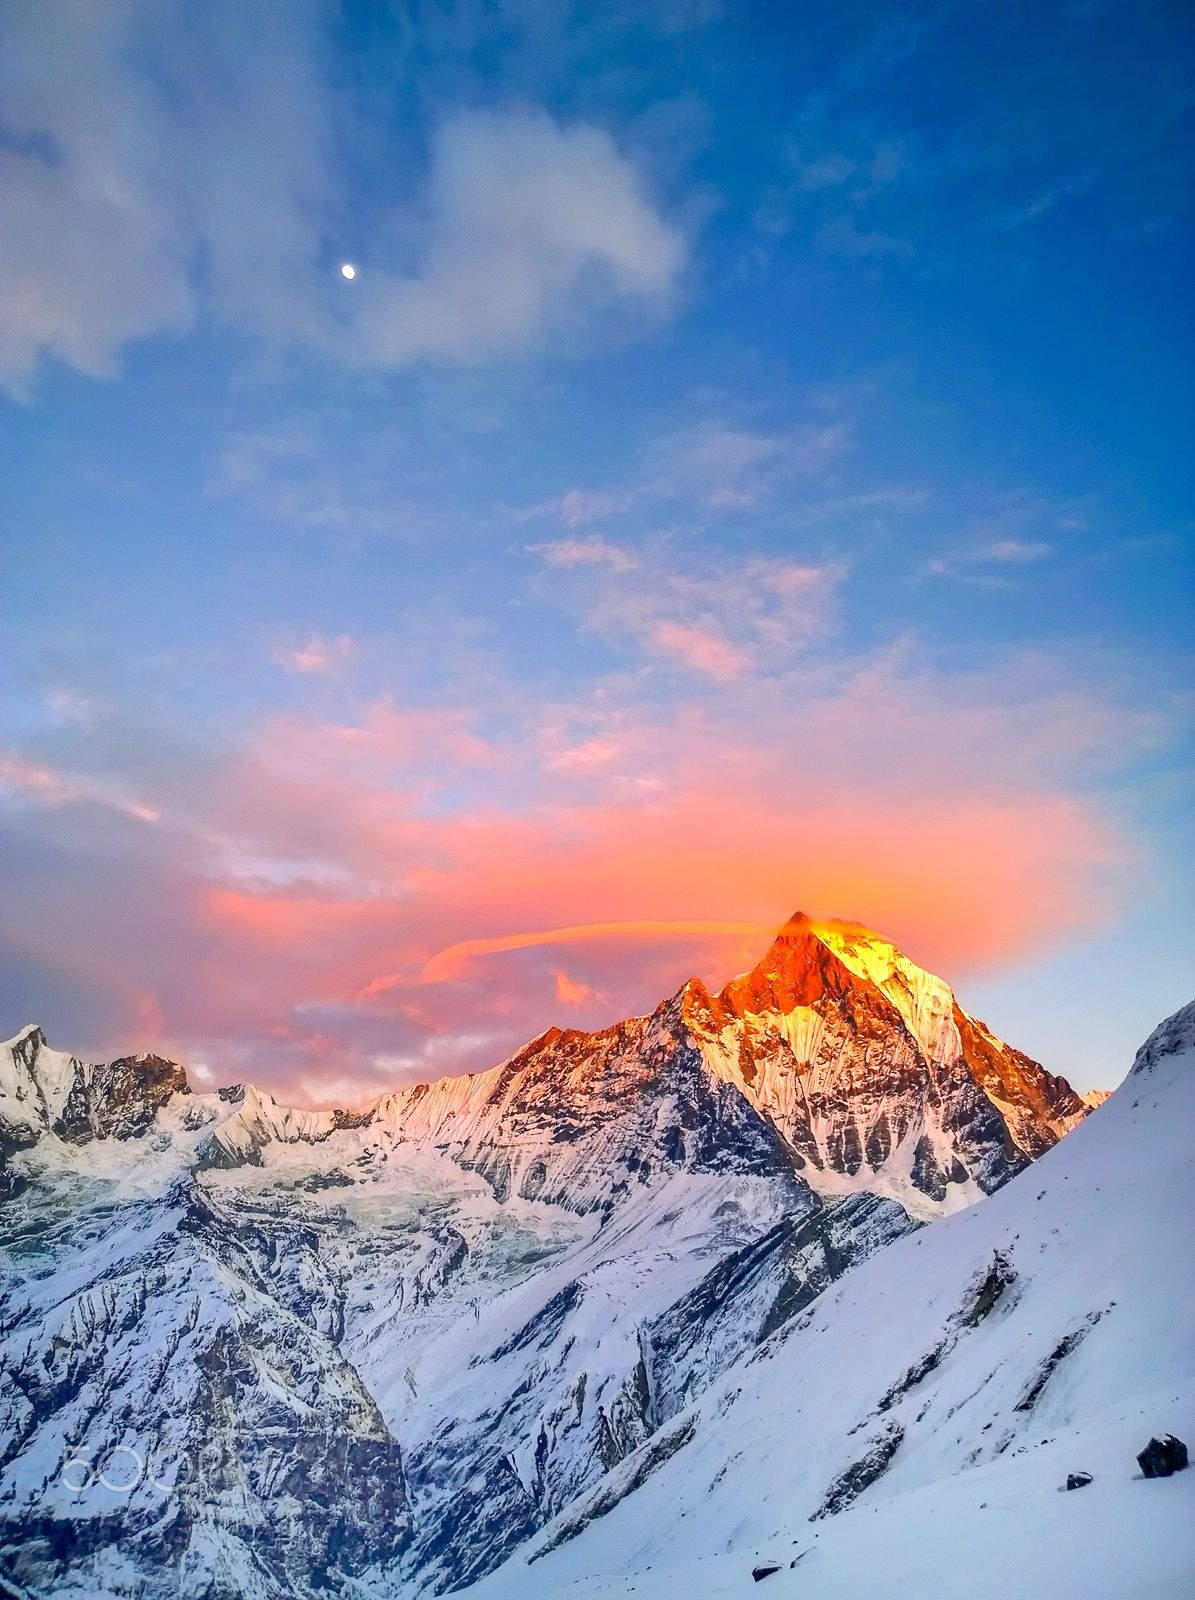 Sunset at Mt. Annapurna, Narchyang, Nepal by HUA QIAO Travel Gurus - Follow for more Nature Photographies!